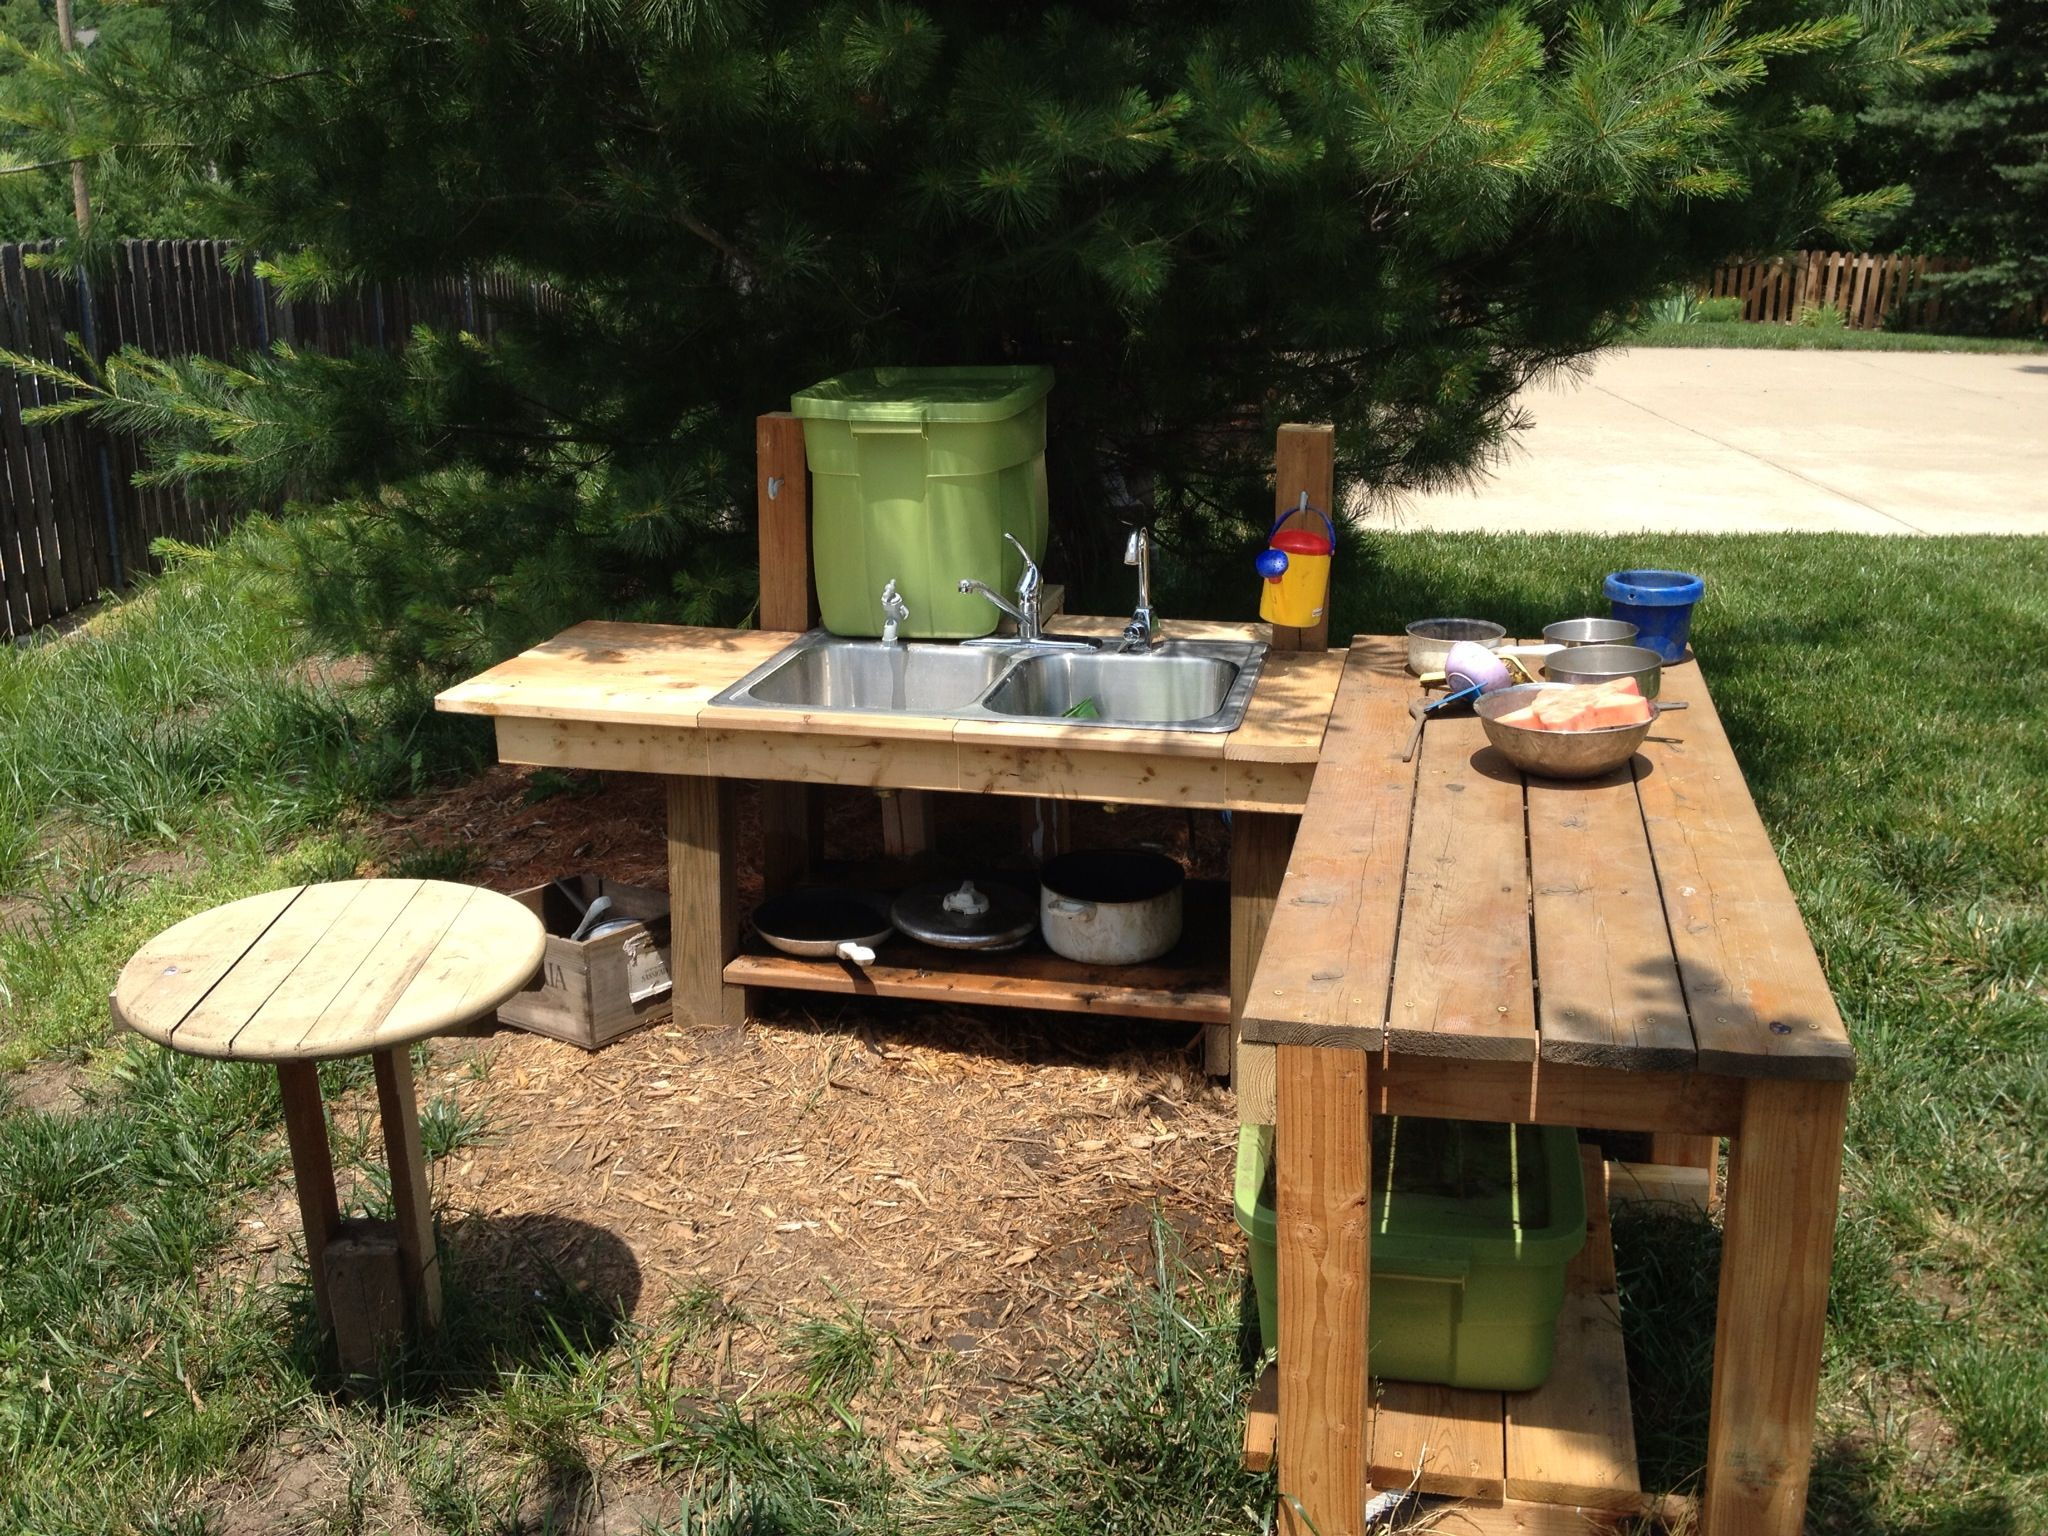 Mud kitchen upcycled pallet mud kitchen pallet kitchen counter with - My Kids Outdoor Mud Kitchen Complete With Tub Of Topsoil And Water Barrel To Make